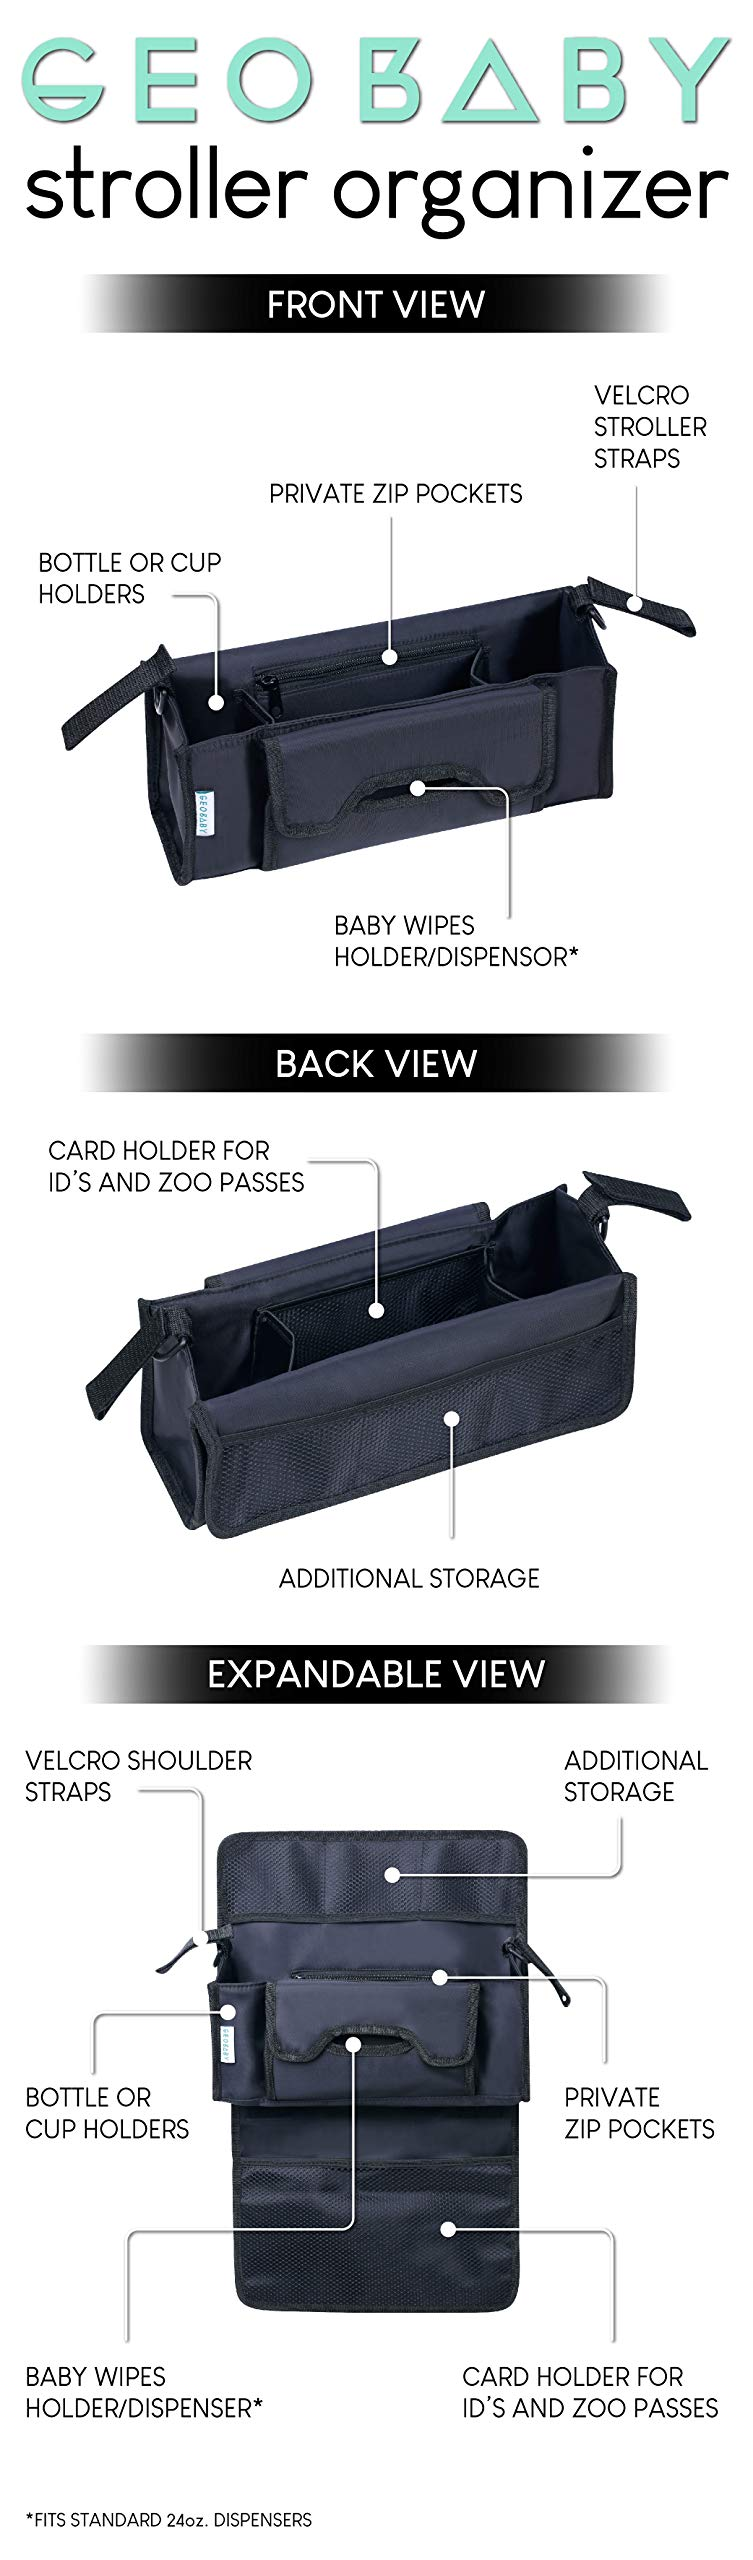 GeoBaby Modern and Universal Extra Storage Stroller Organizer With Cup Holders, Diaper Compartments, Wipes Dispenser, Phone Pockets, Baby Shower Idea by GeoBaby (Image #6)